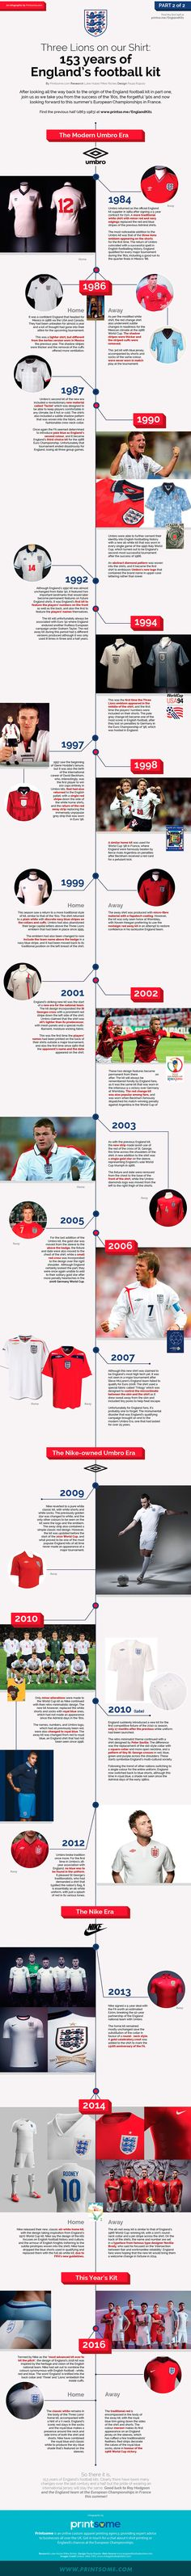 6e0dcee0c 153 Years of The England Football Shirt  The Modern History